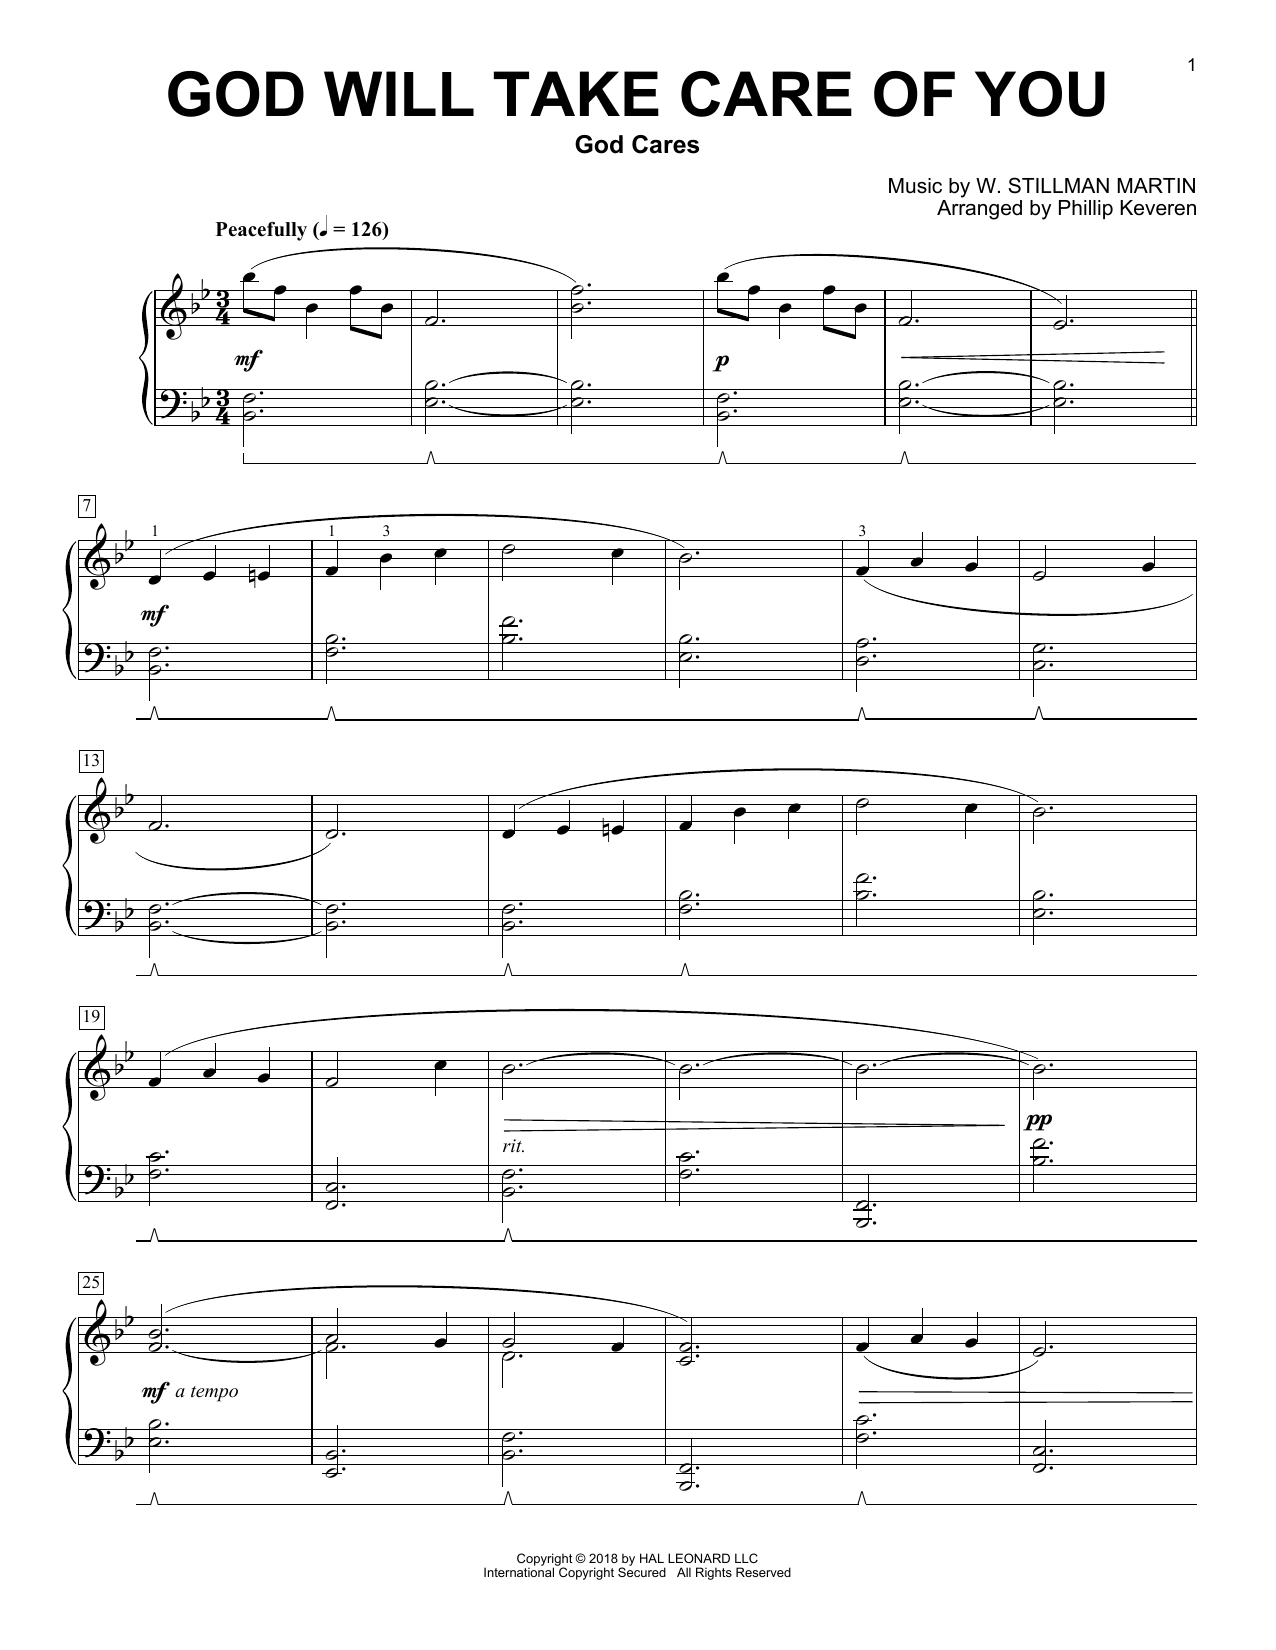 Download W. Stillman Martin 'God Will Take Care Of You (arr. Phillip Keveren)' Digital Sheet Music Notes & Chords and start playing in minutes